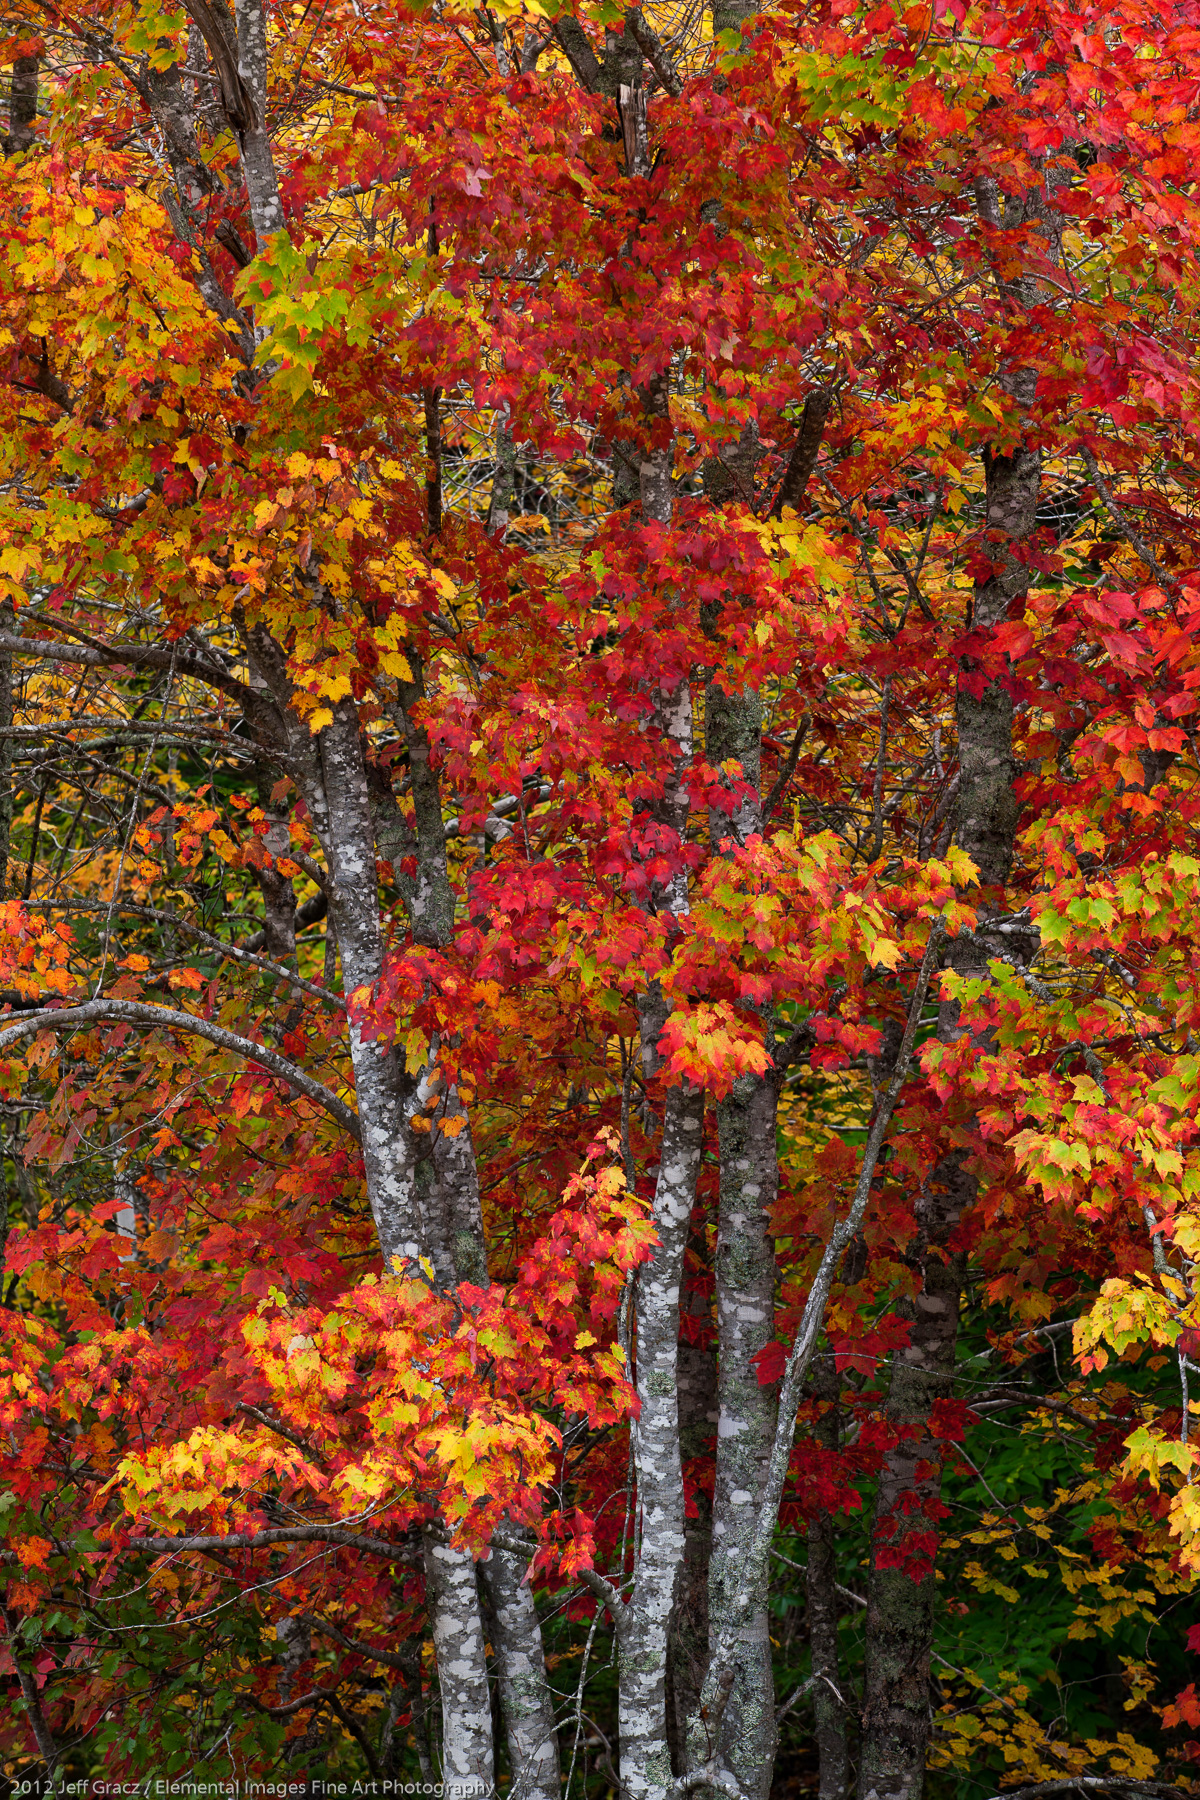 Cape Breton Maple | Cape Breton | Nova Scotia | Canada - © 2012 Jeff Gracz / Elemental Images Fine Art Photography - All Rights Reserved Worldwide